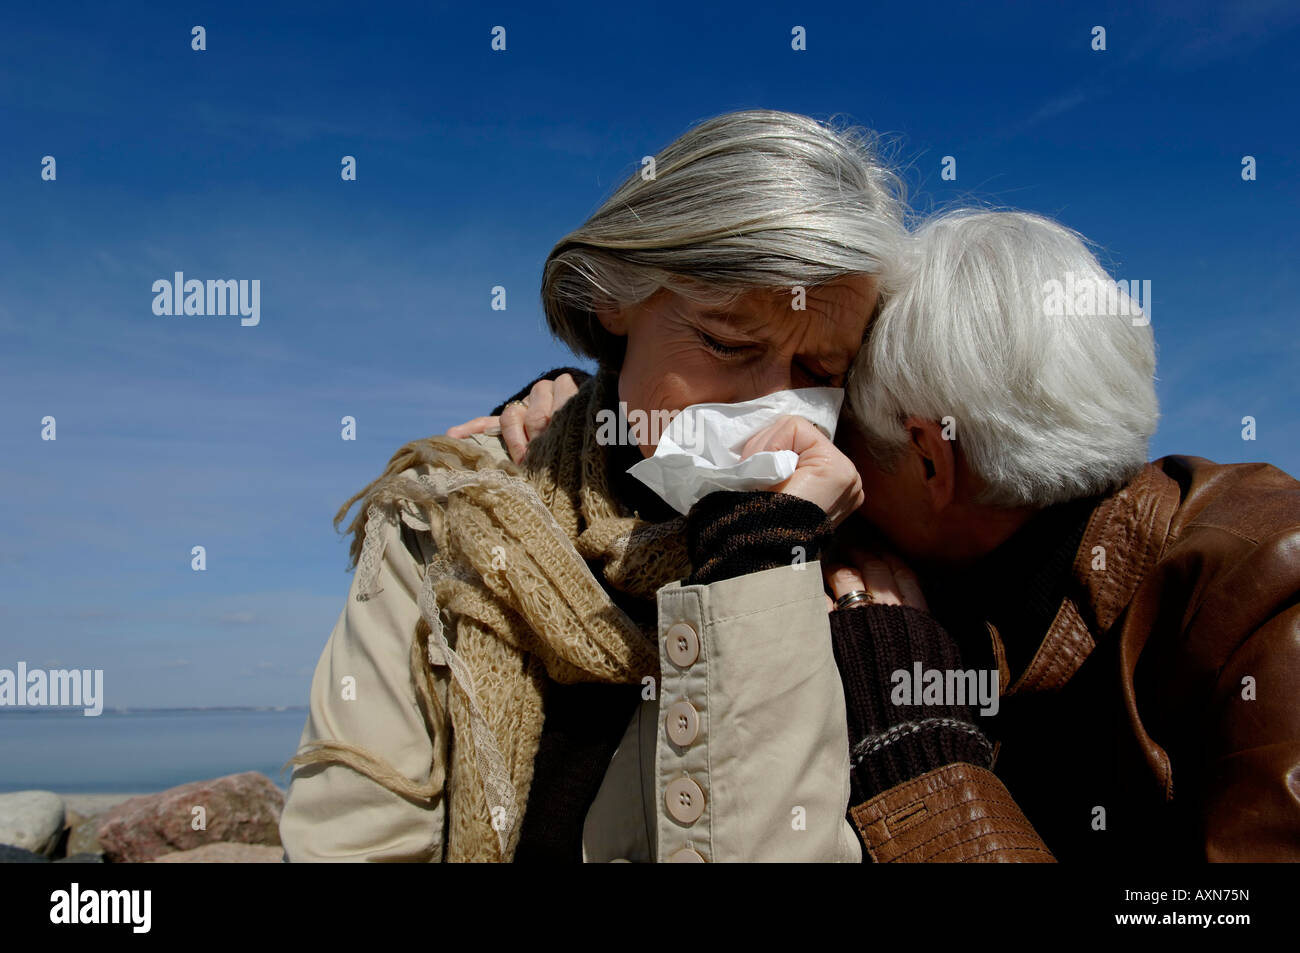 Two mature women embracing each other, one woman crying - Stock Image